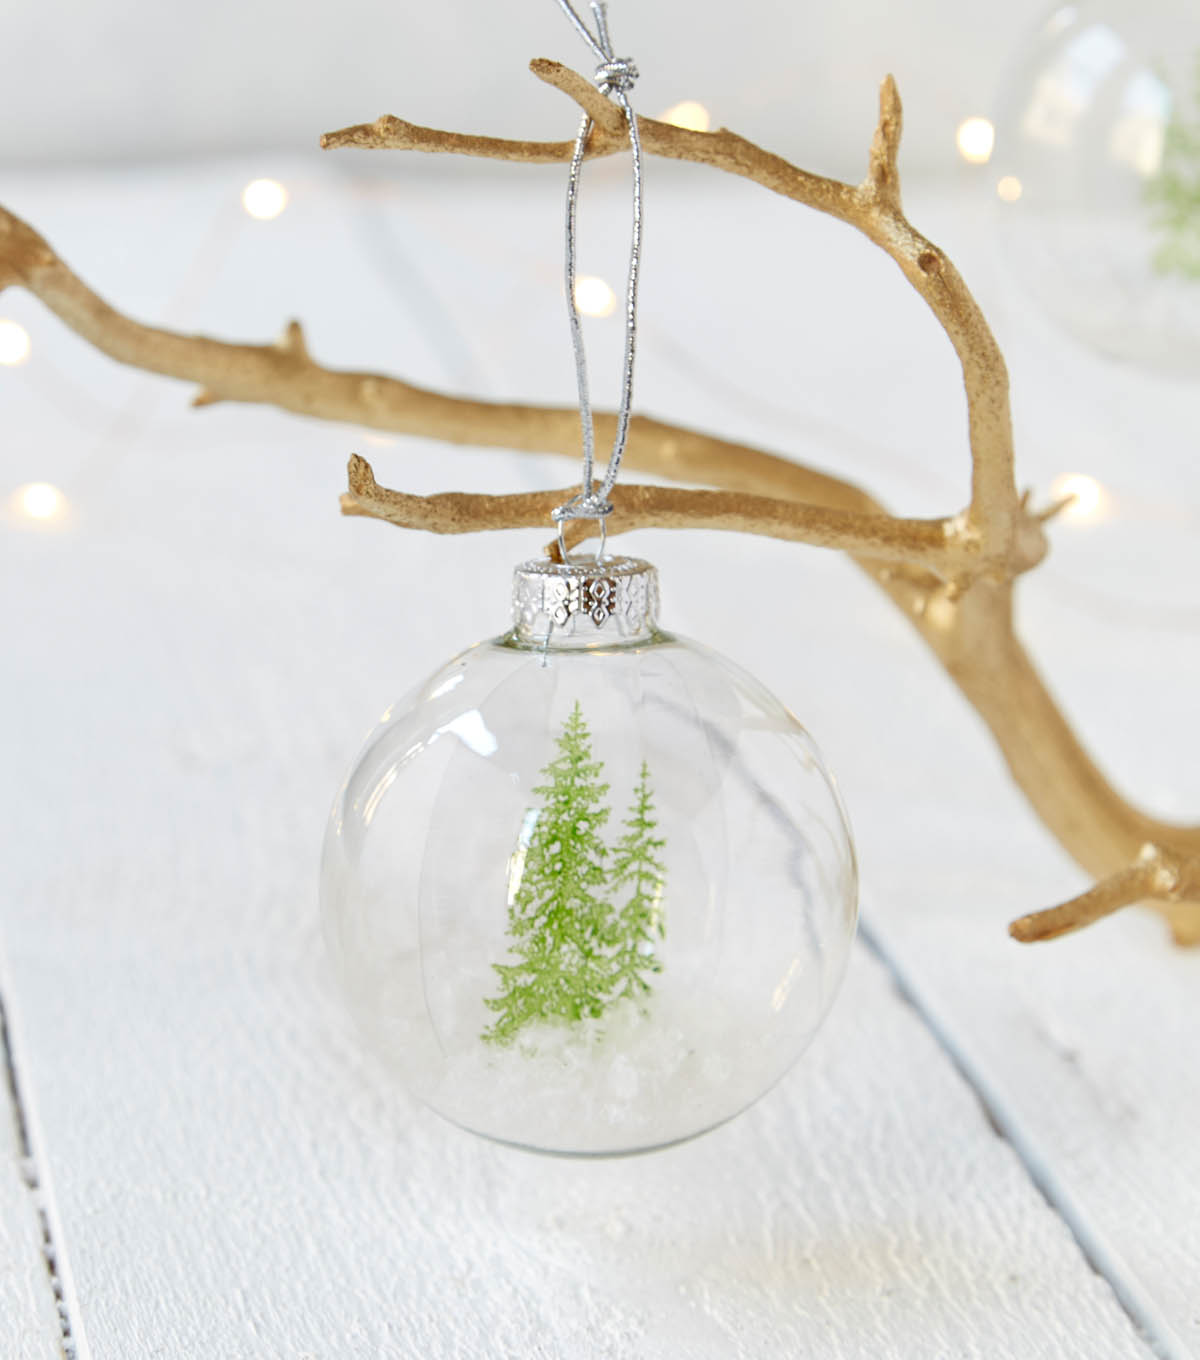 How To Make Pine Tree Ornaments